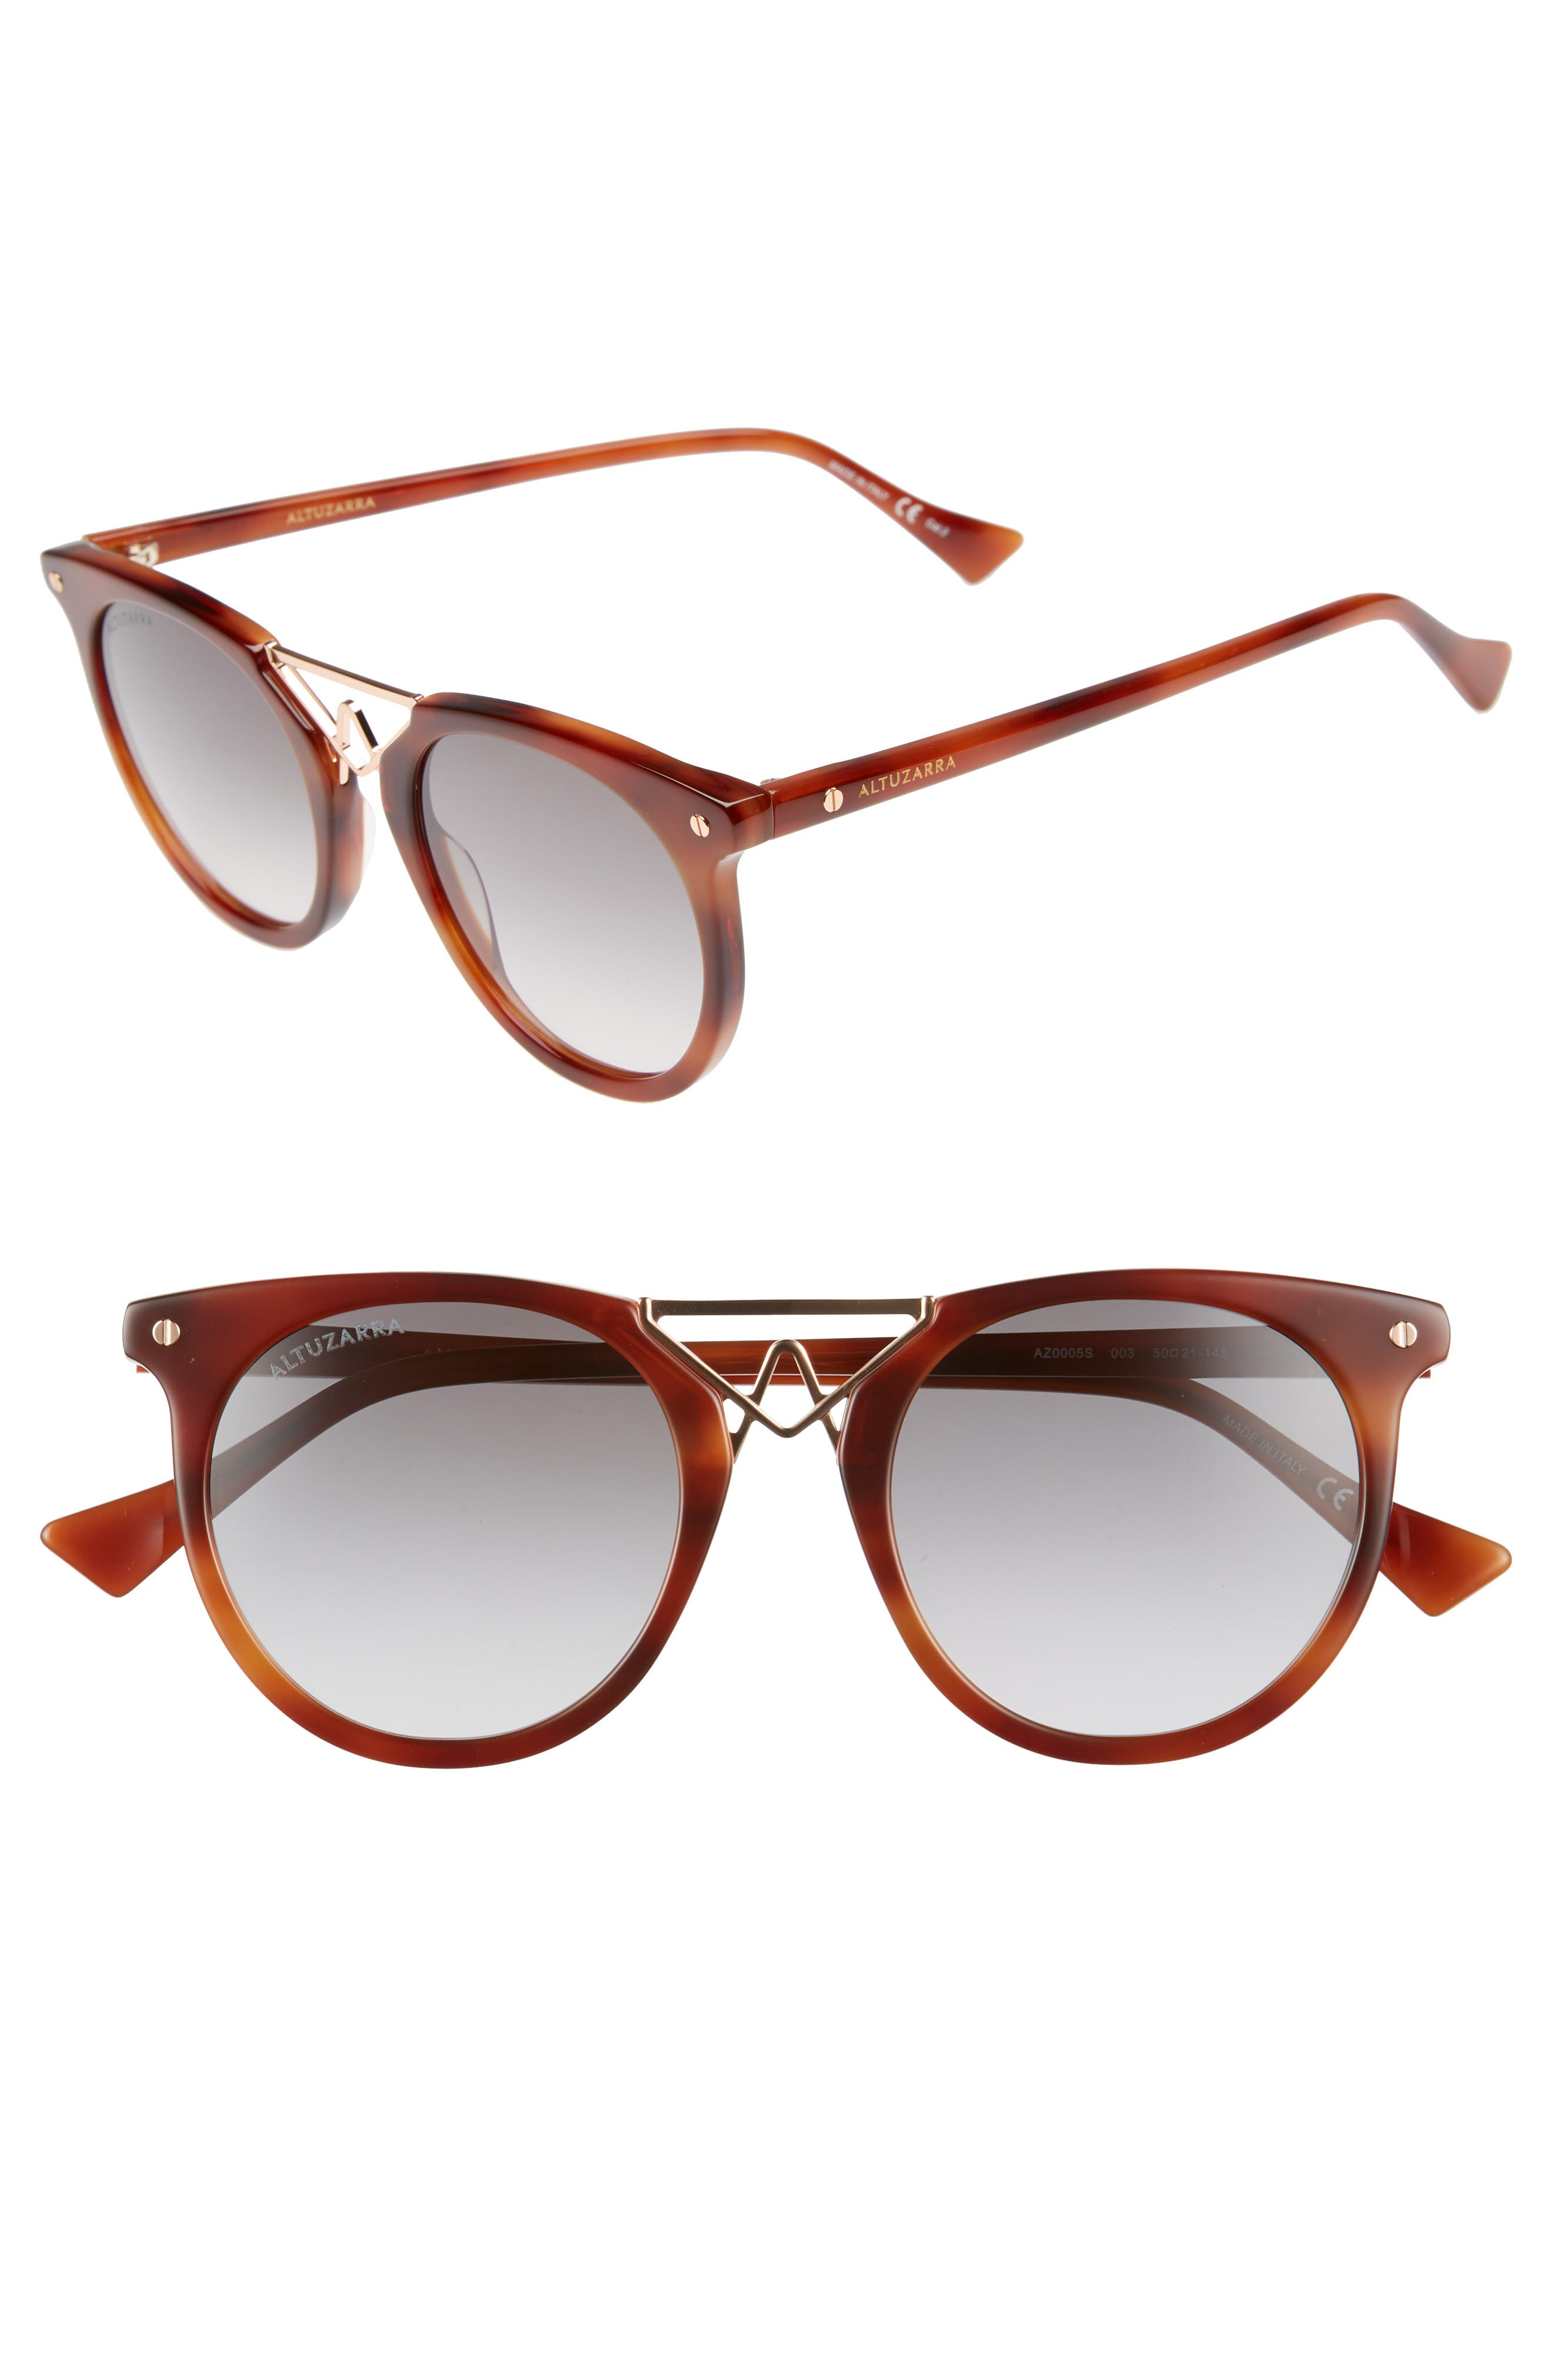 50mm Round Sunglasses,                             Main thumbnail 1, color,                             Havana/ Rose Gold